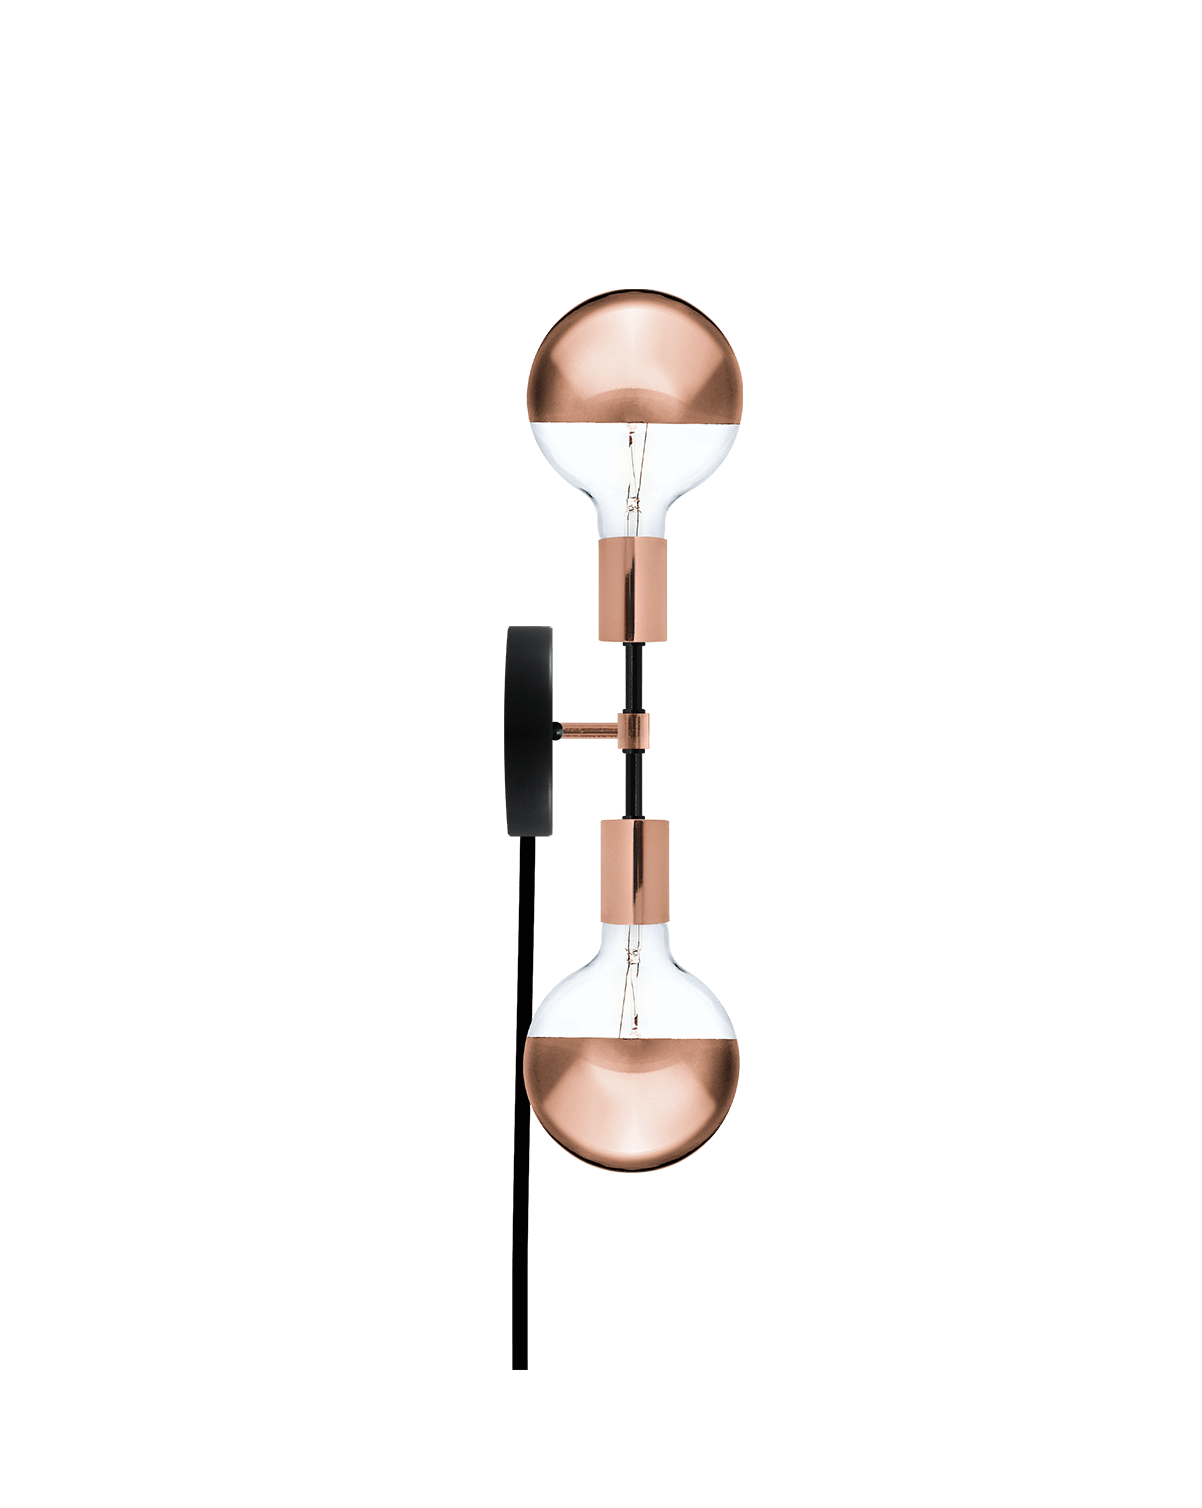 Plug-In Double Wall Sconce: Black and Copper Hangout Lighting